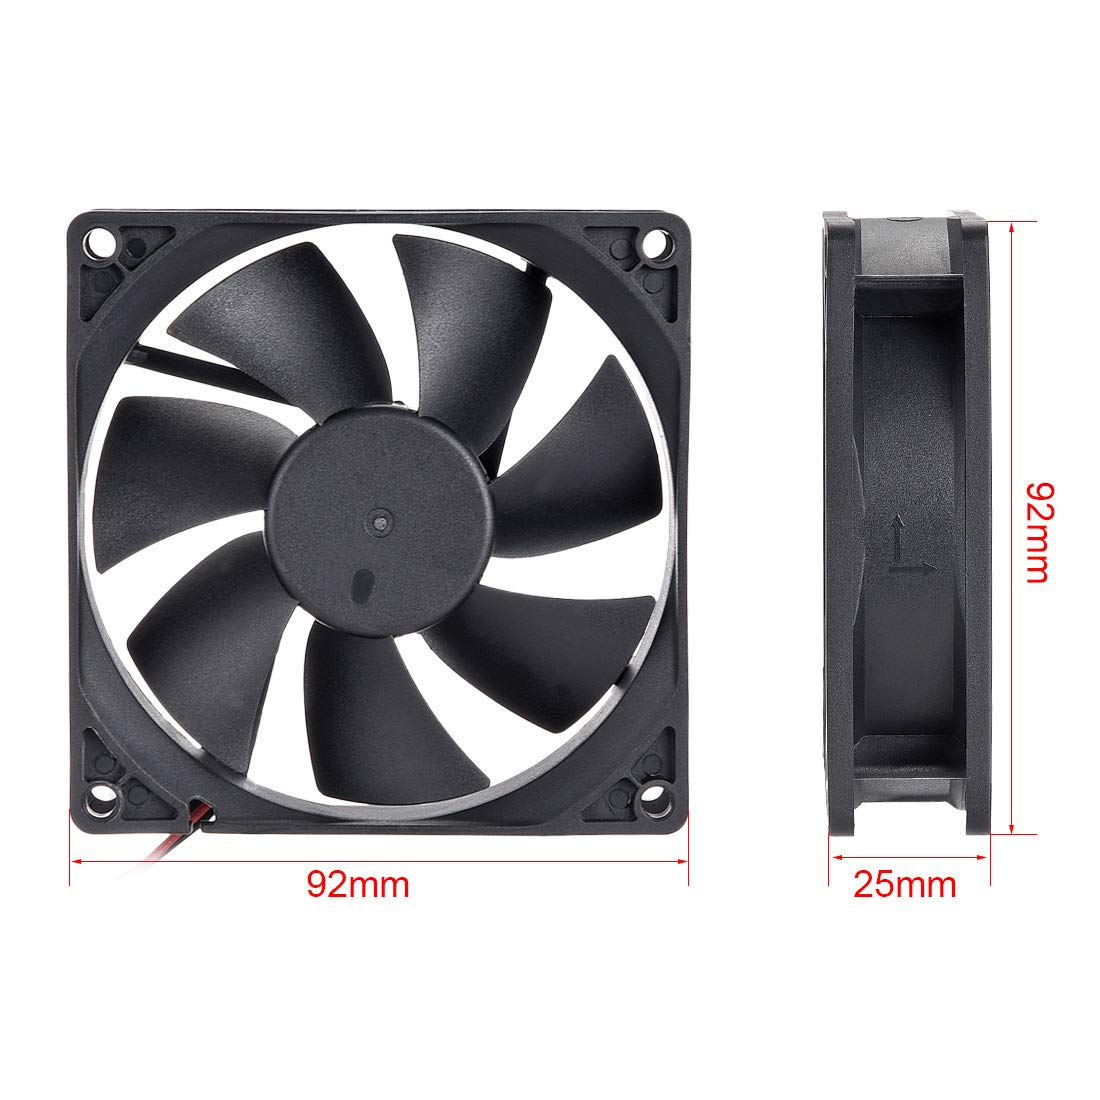 uxcell SNOWFAN Authorized 80mm x 80mm x 25mm 24V Brushless DC Cooling Fan #0297